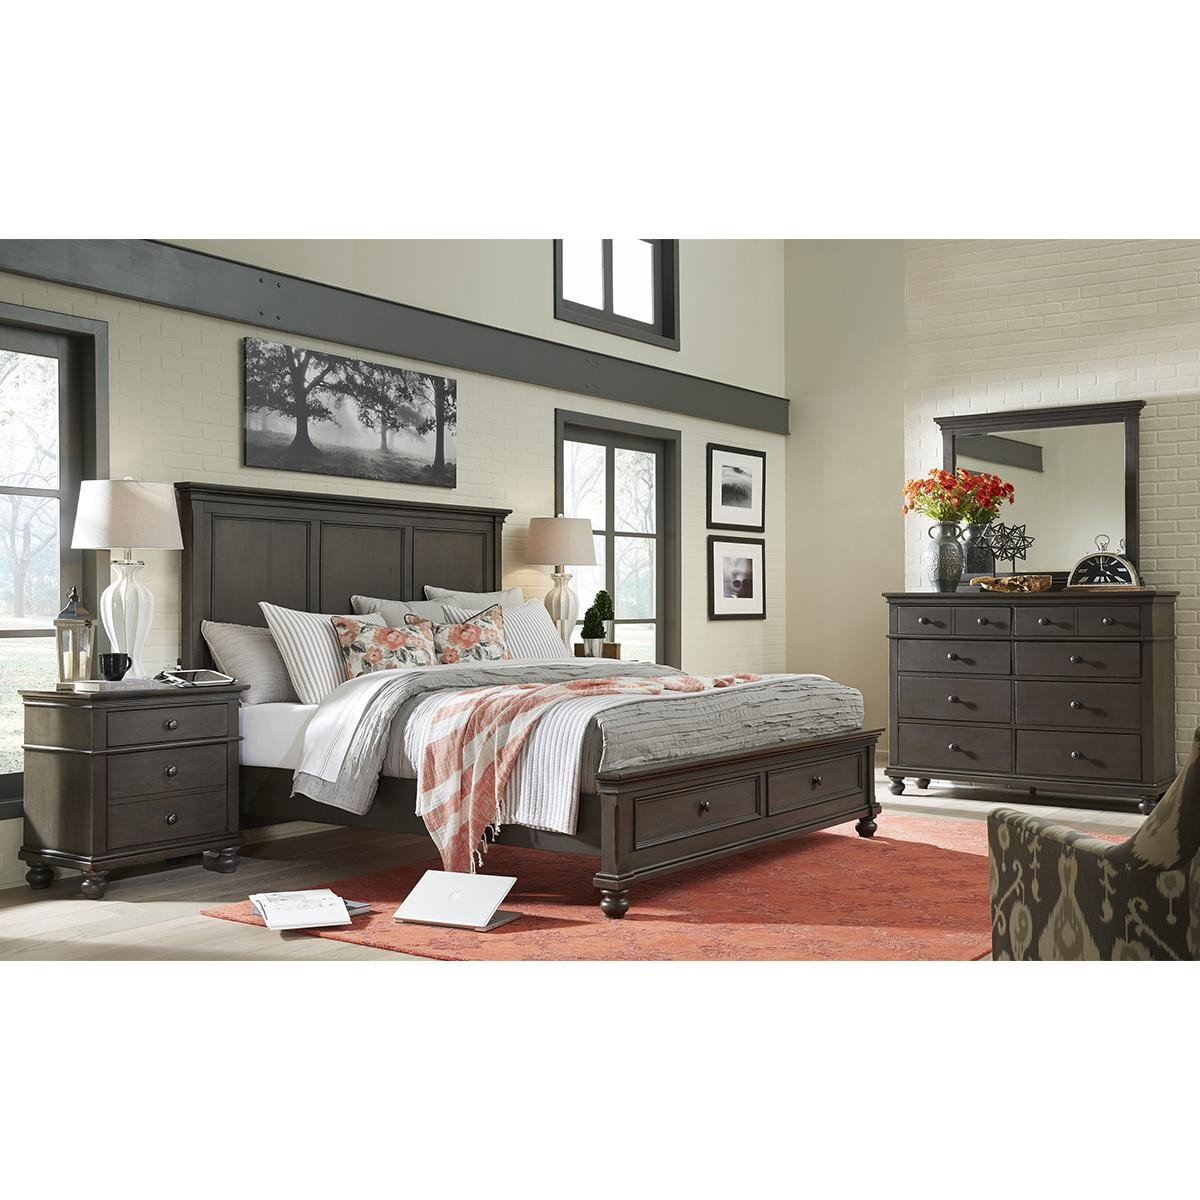 King Size Bedroom Set Cheap Unique Riva Ridge Oxford 4 Piece King Bedroom Set In Peppercorn